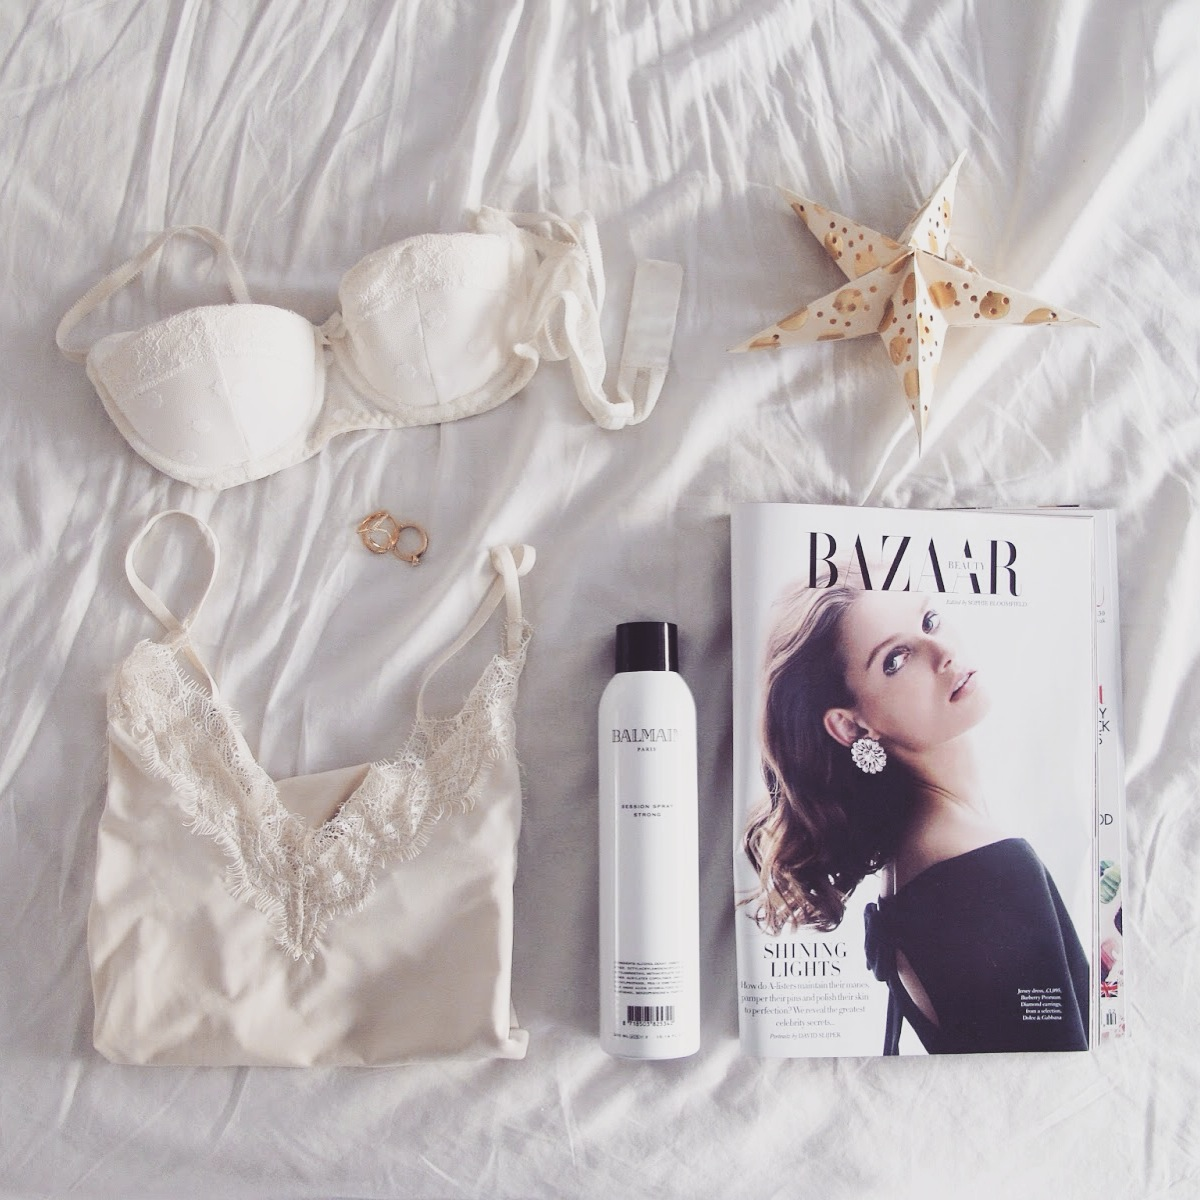 weekend essentials, shop rajic, rosemunde, balmain hair couture, melanie auld designs, david j. butler